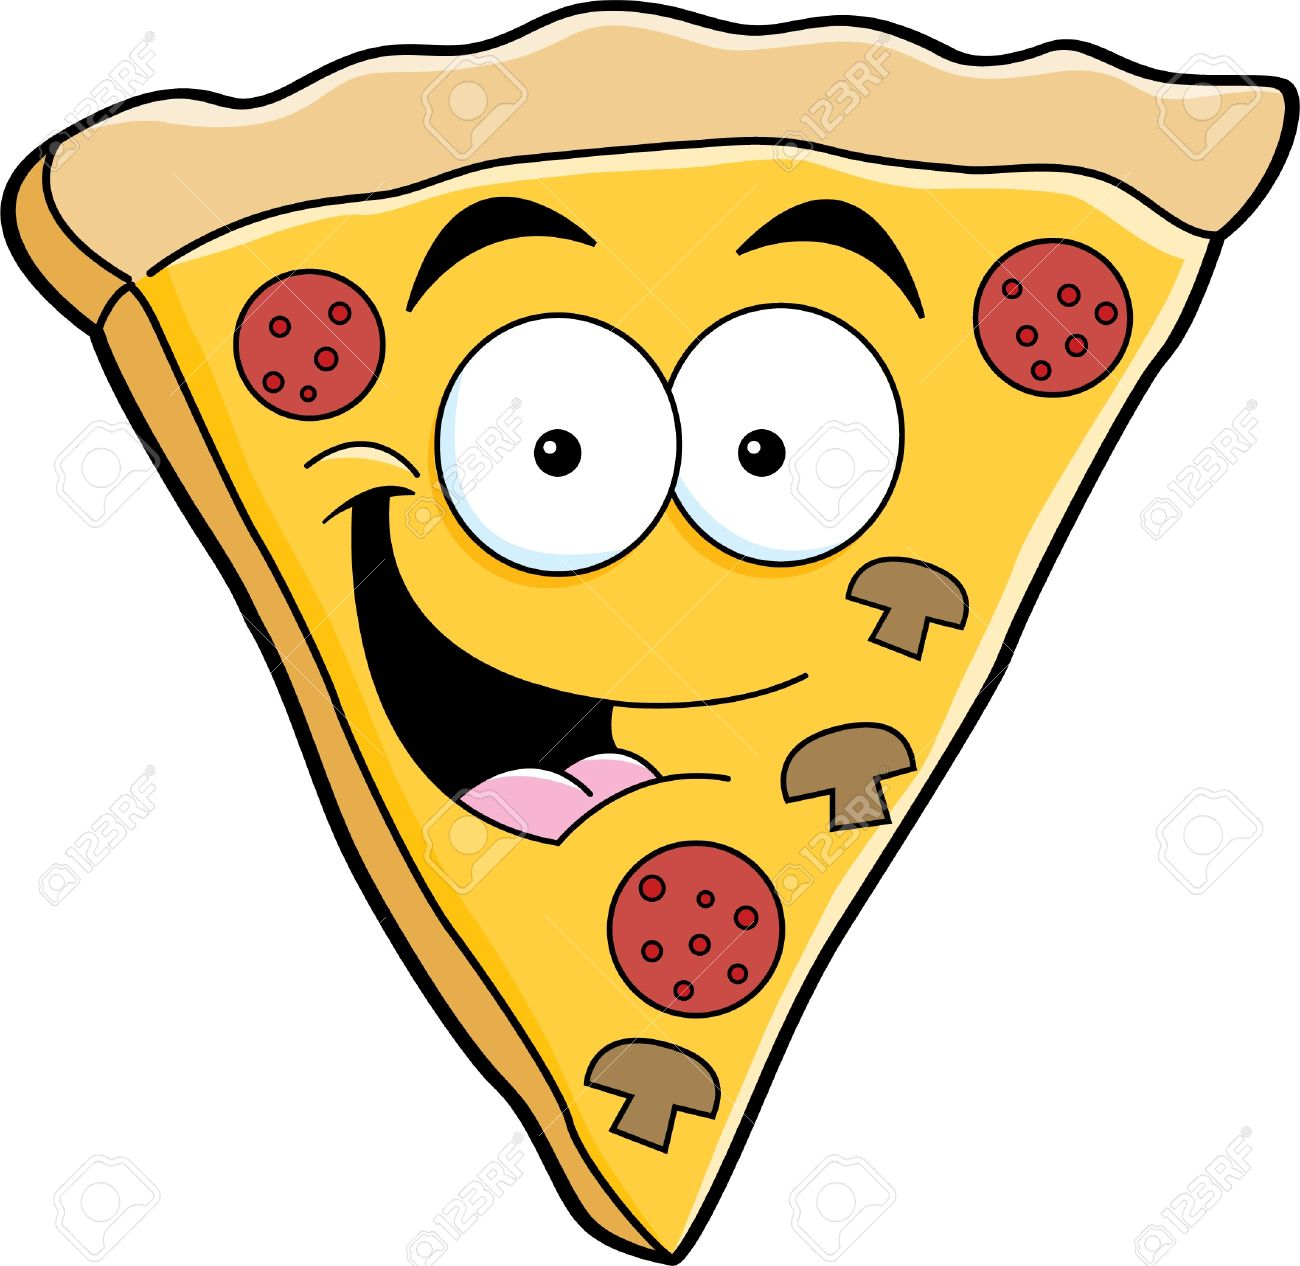 Clipart of a Smiling Pizza Slice Character - Royalty Free Vector ...